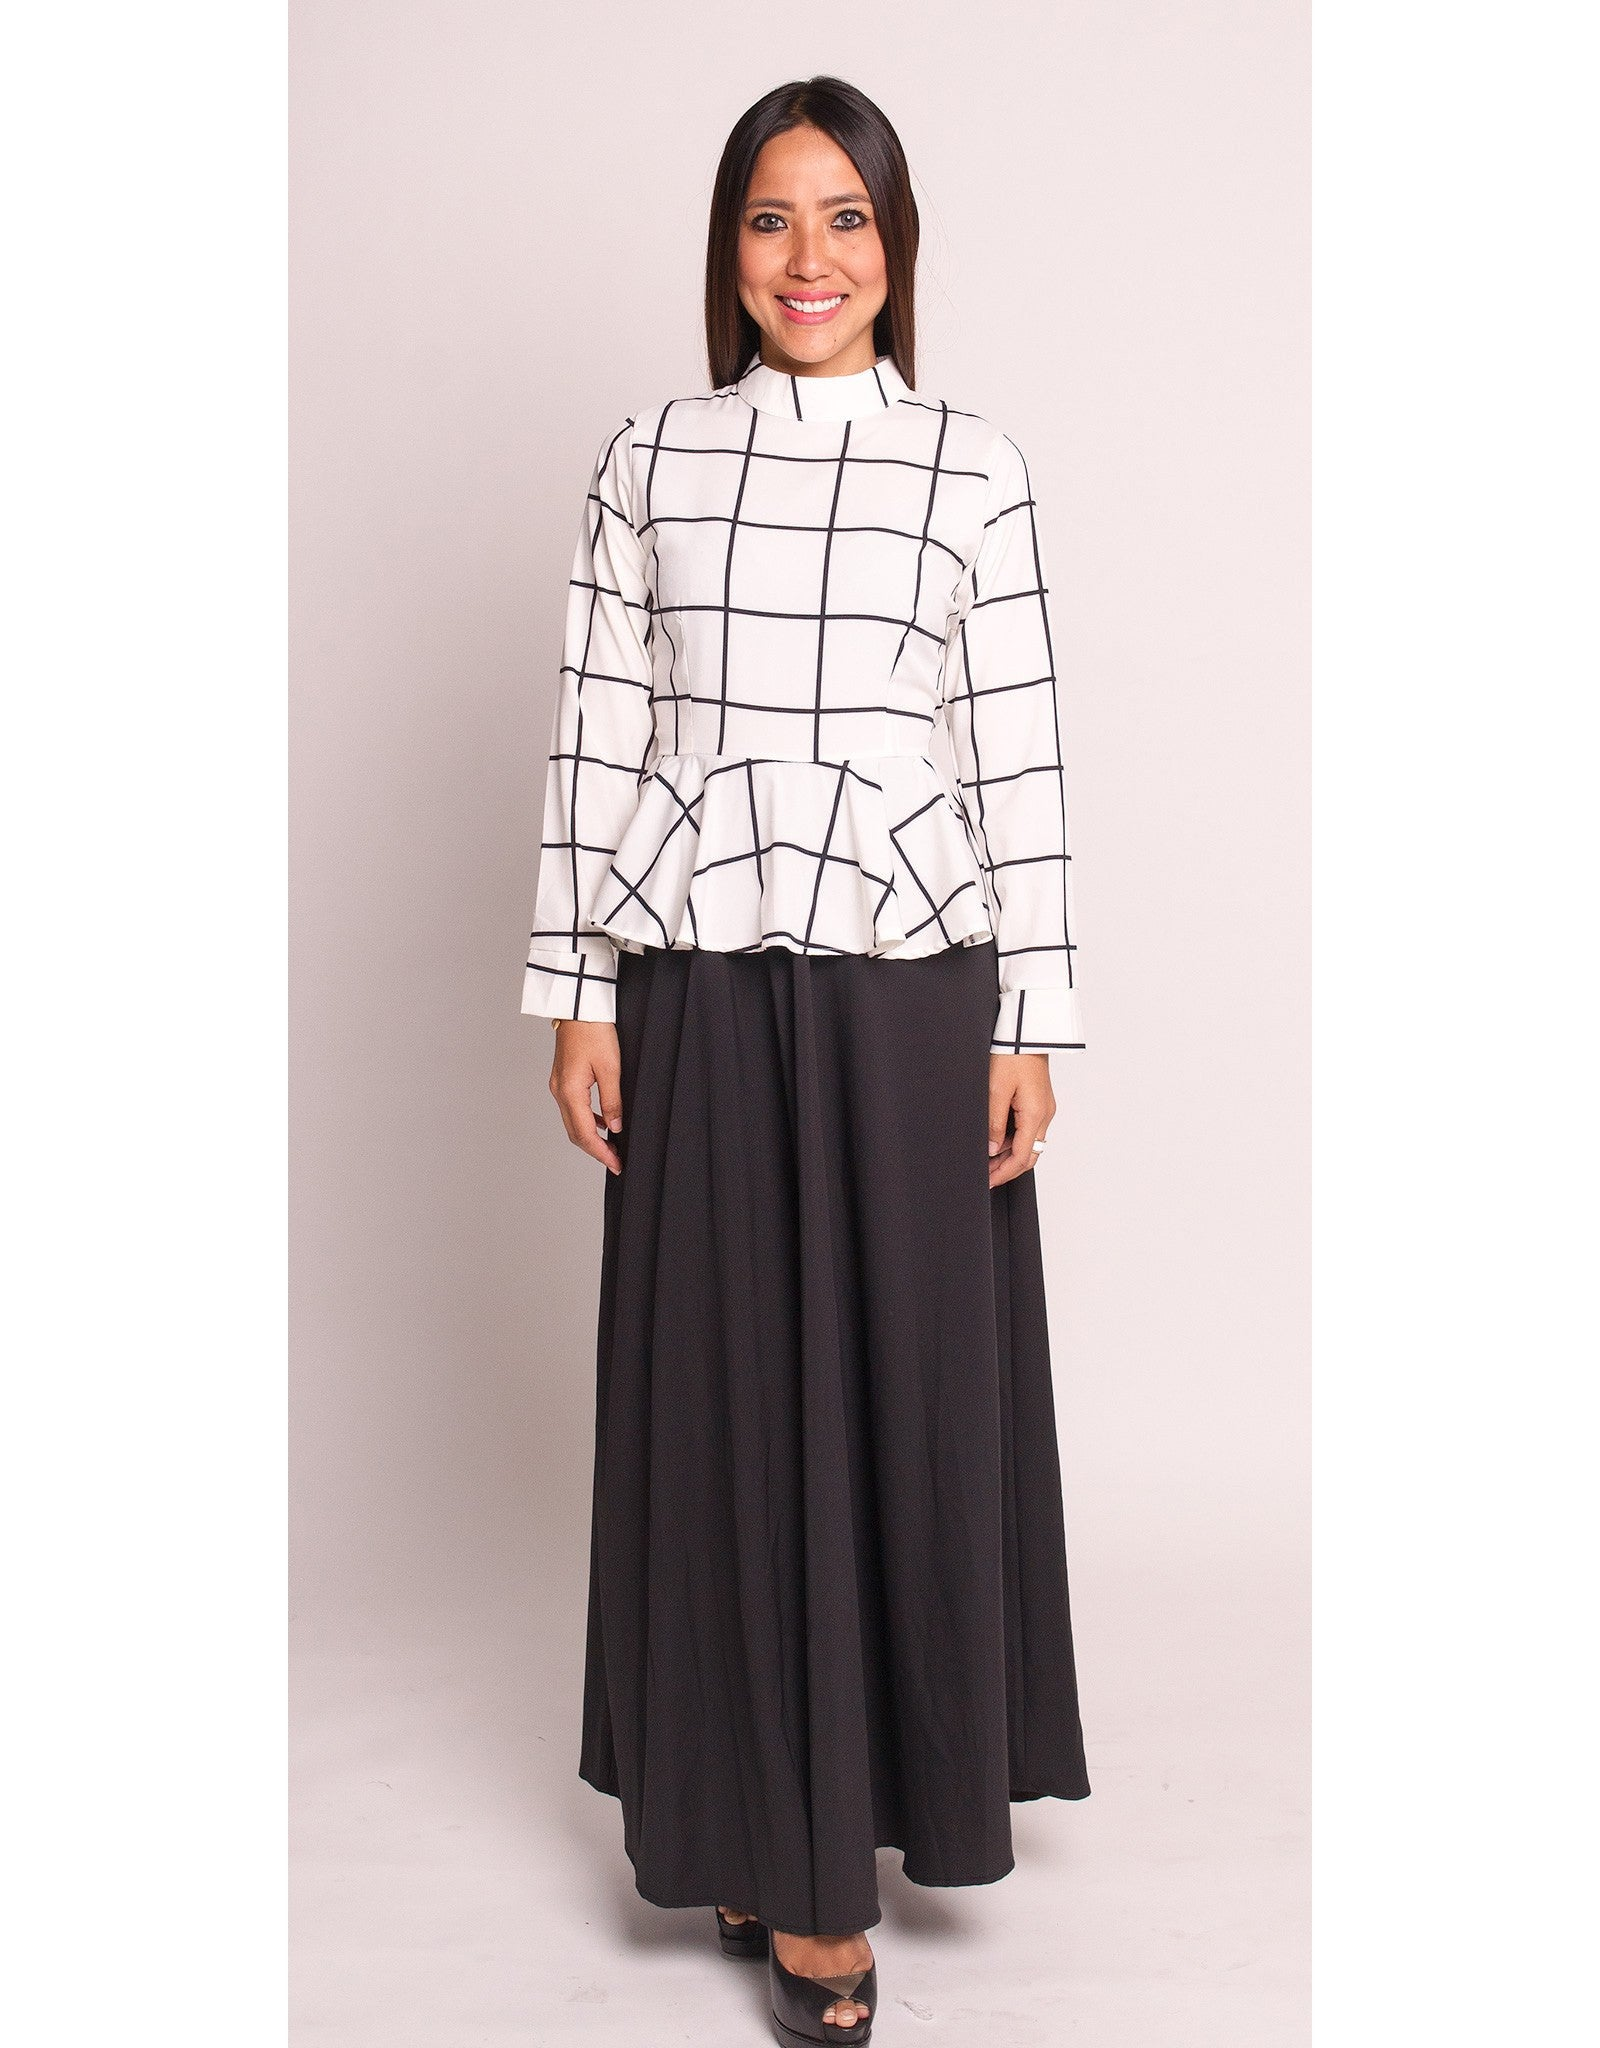 Super Peplum Top with Long Skirt (White) – Bazaar 22 WP61